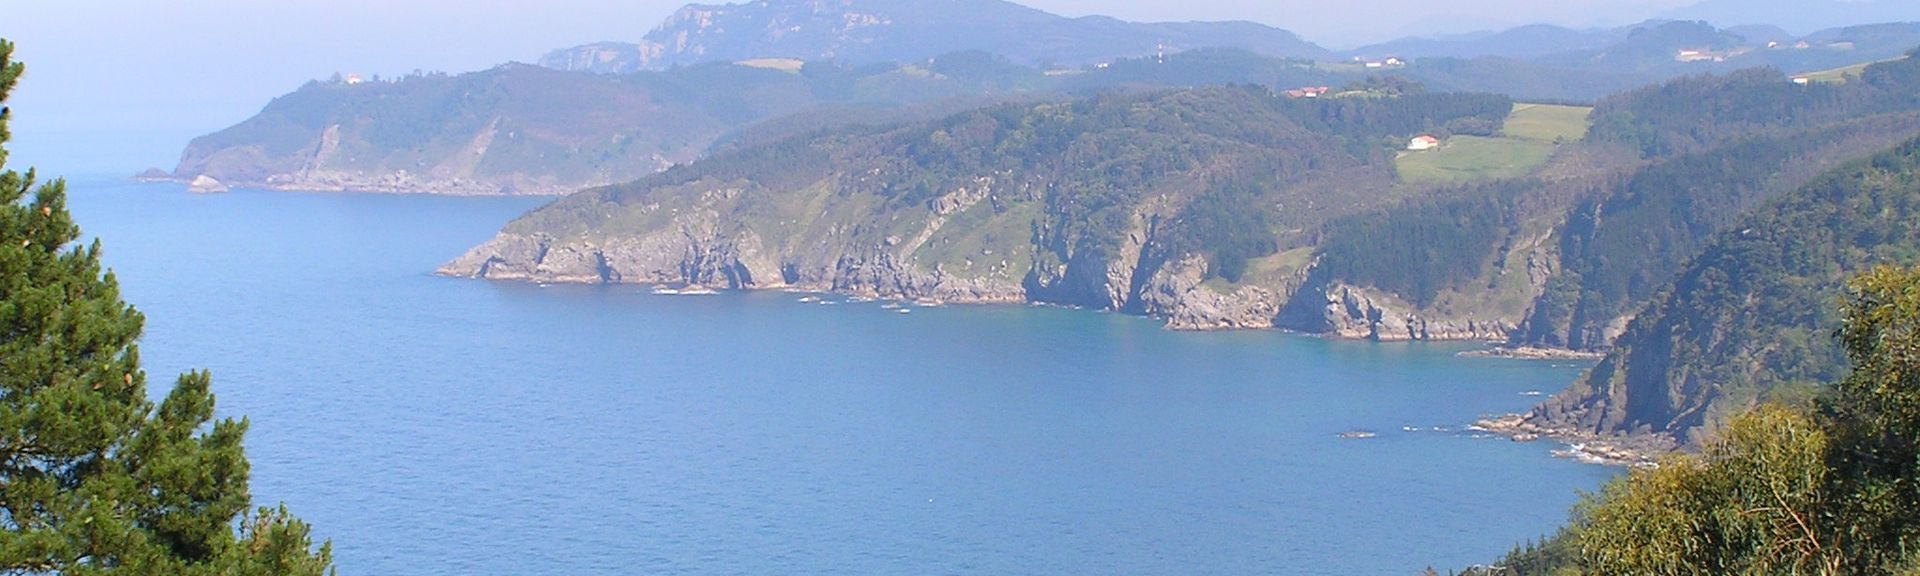 Bermeo, Basque Country, Spain